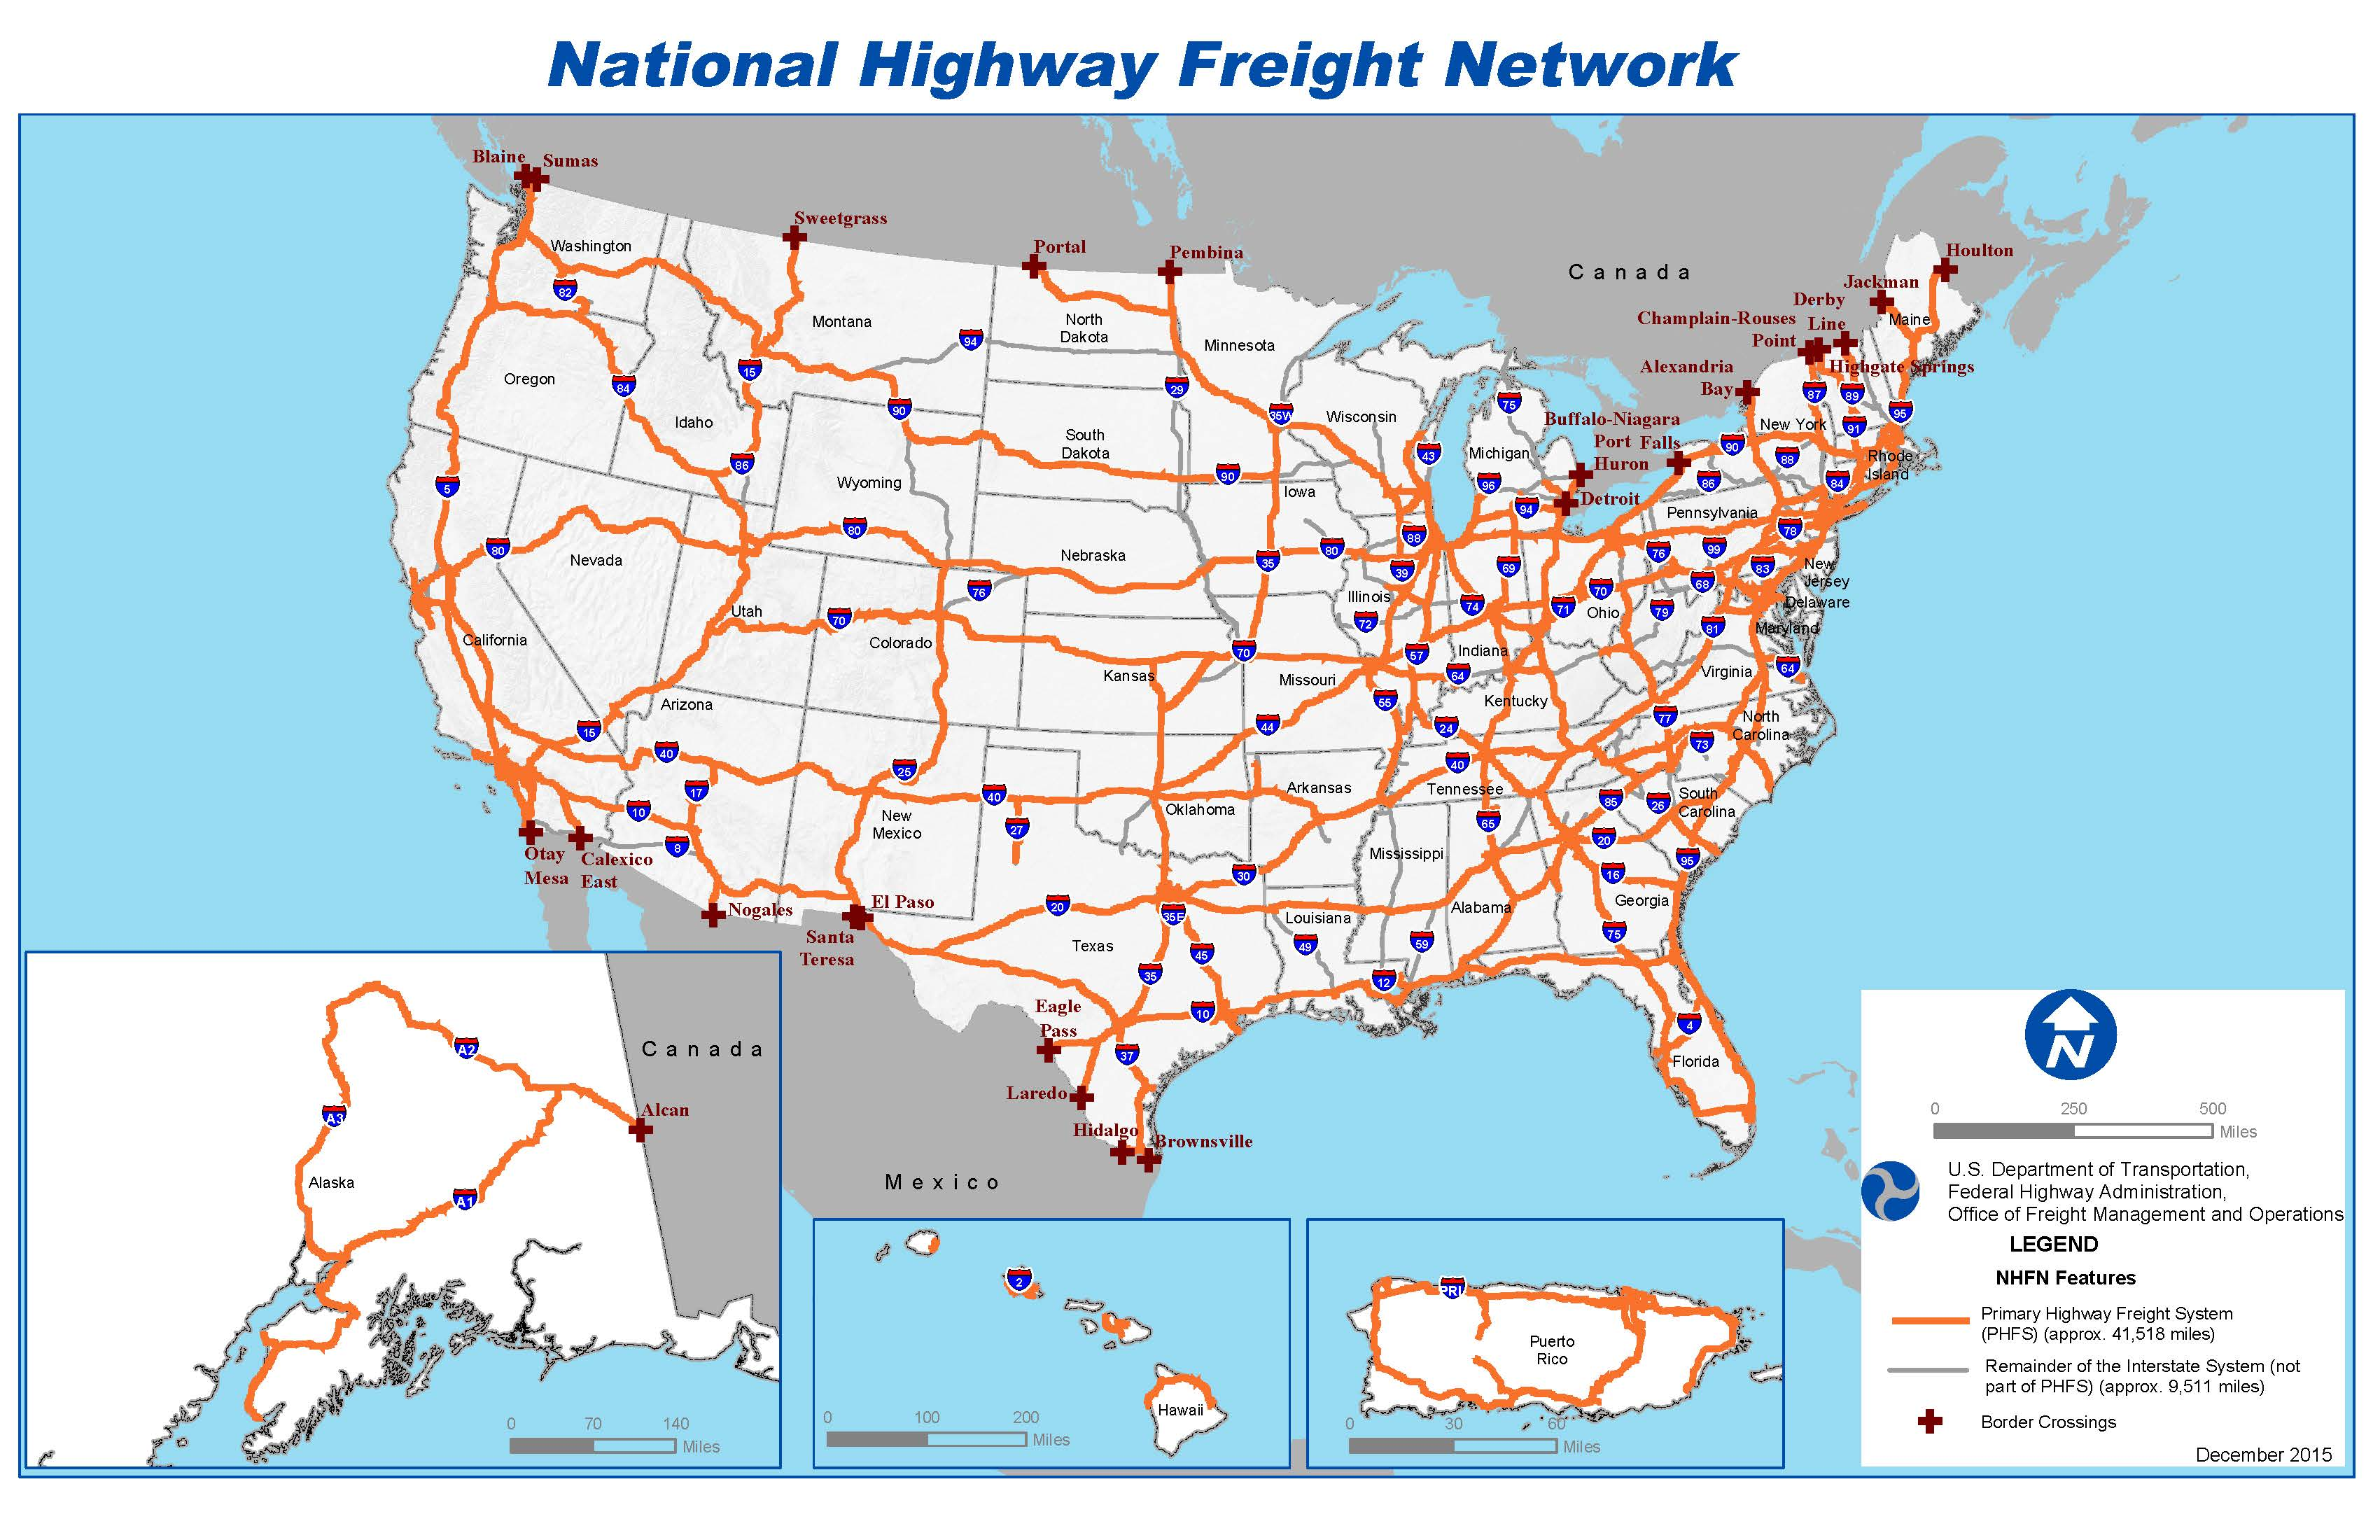 National Highway Freight Network Map